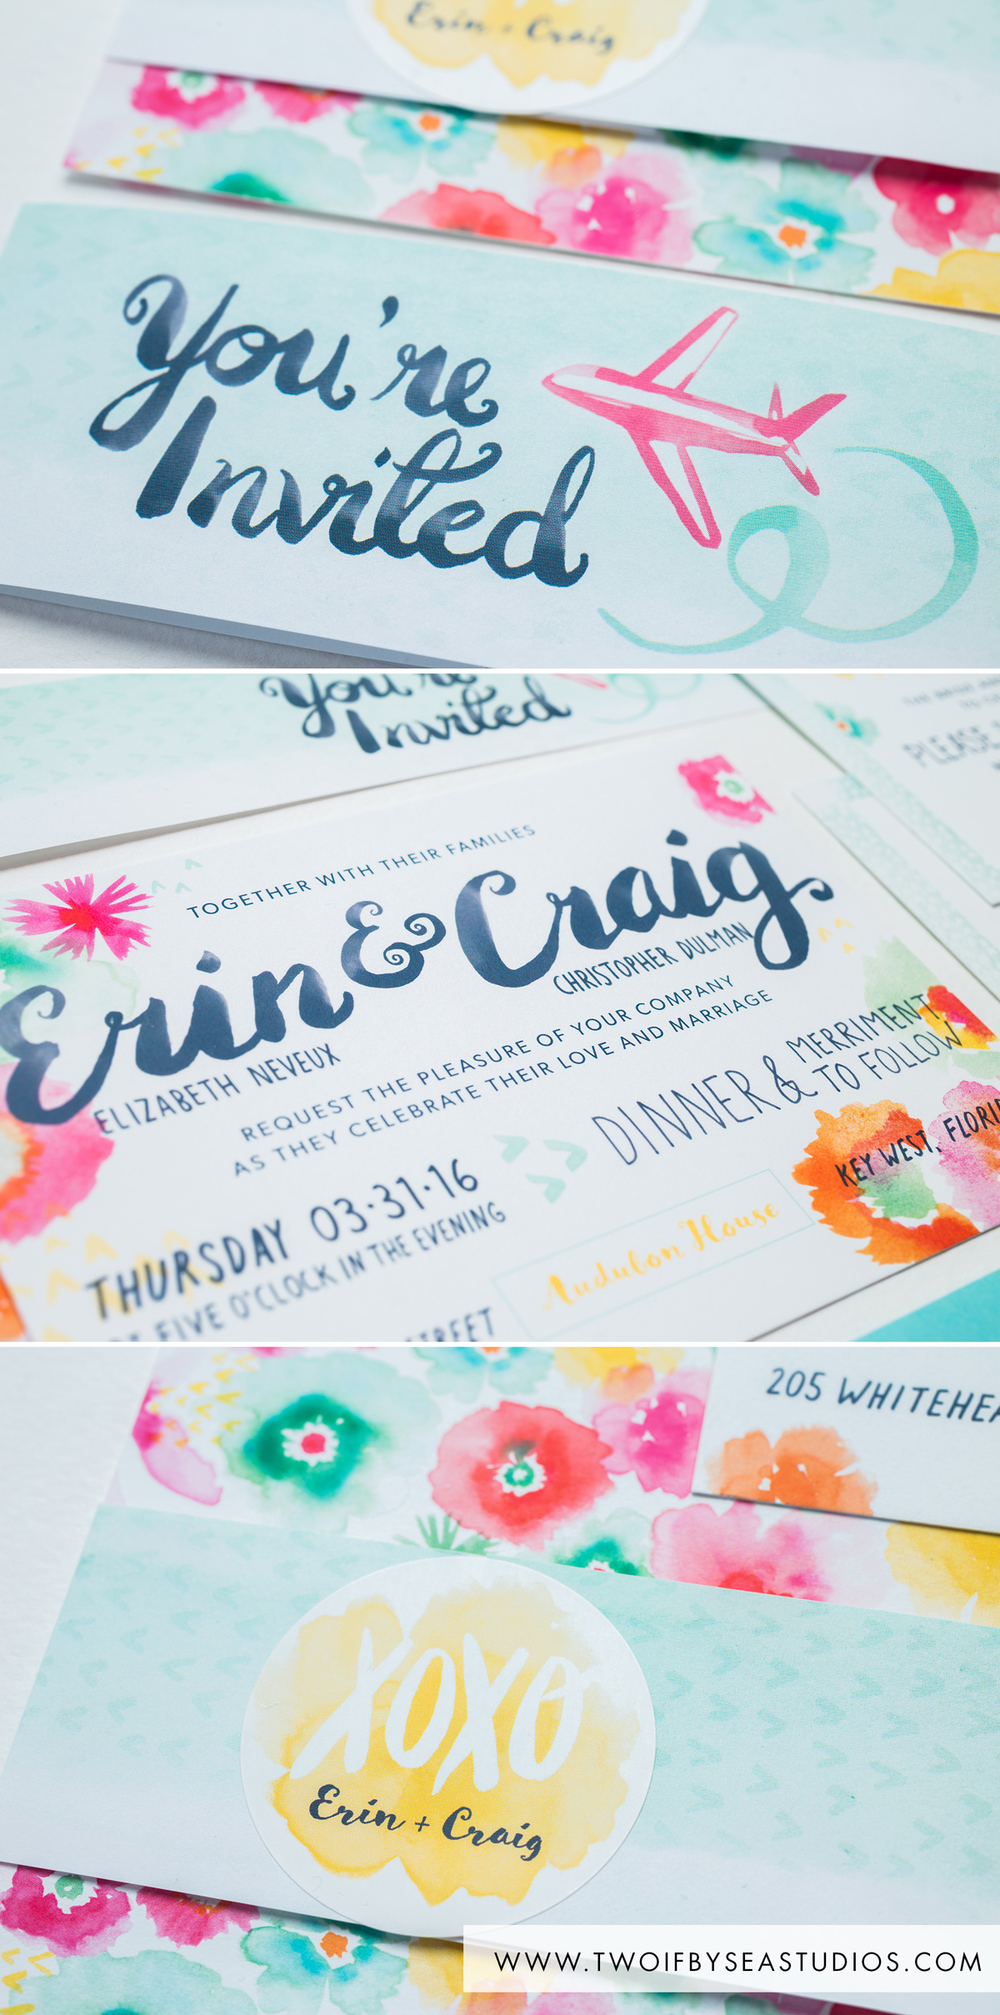 TwoifbySeaStudios-Watercolor-Floral-Invitations-Key-West.jpg